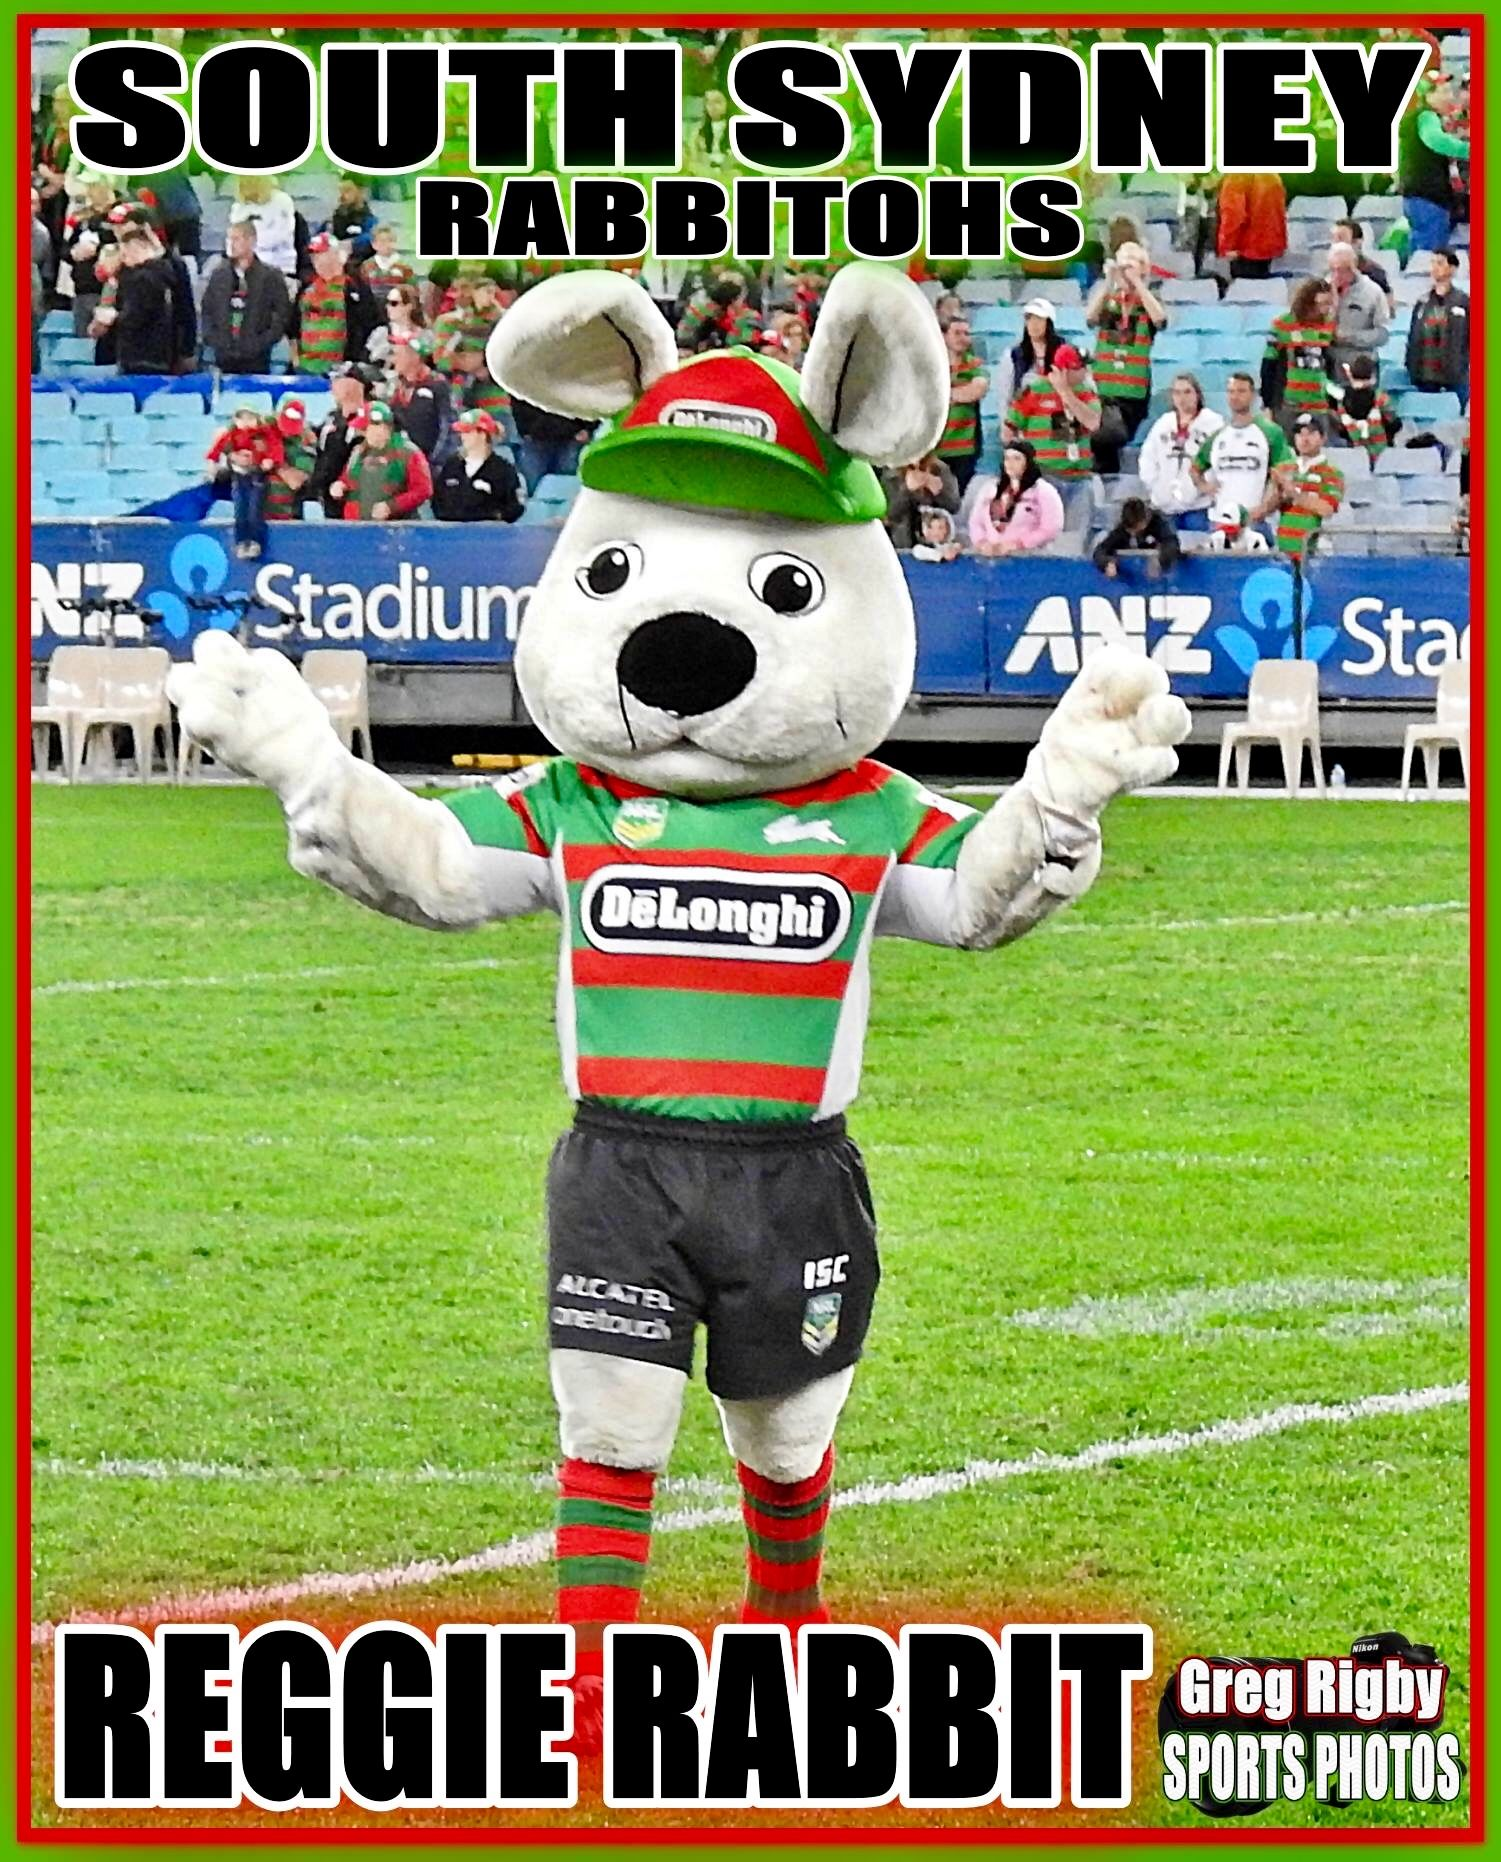 Pin By Jared Schnabl On Rabbitohs Rabbits In Australia Sports Photos Sports Logo